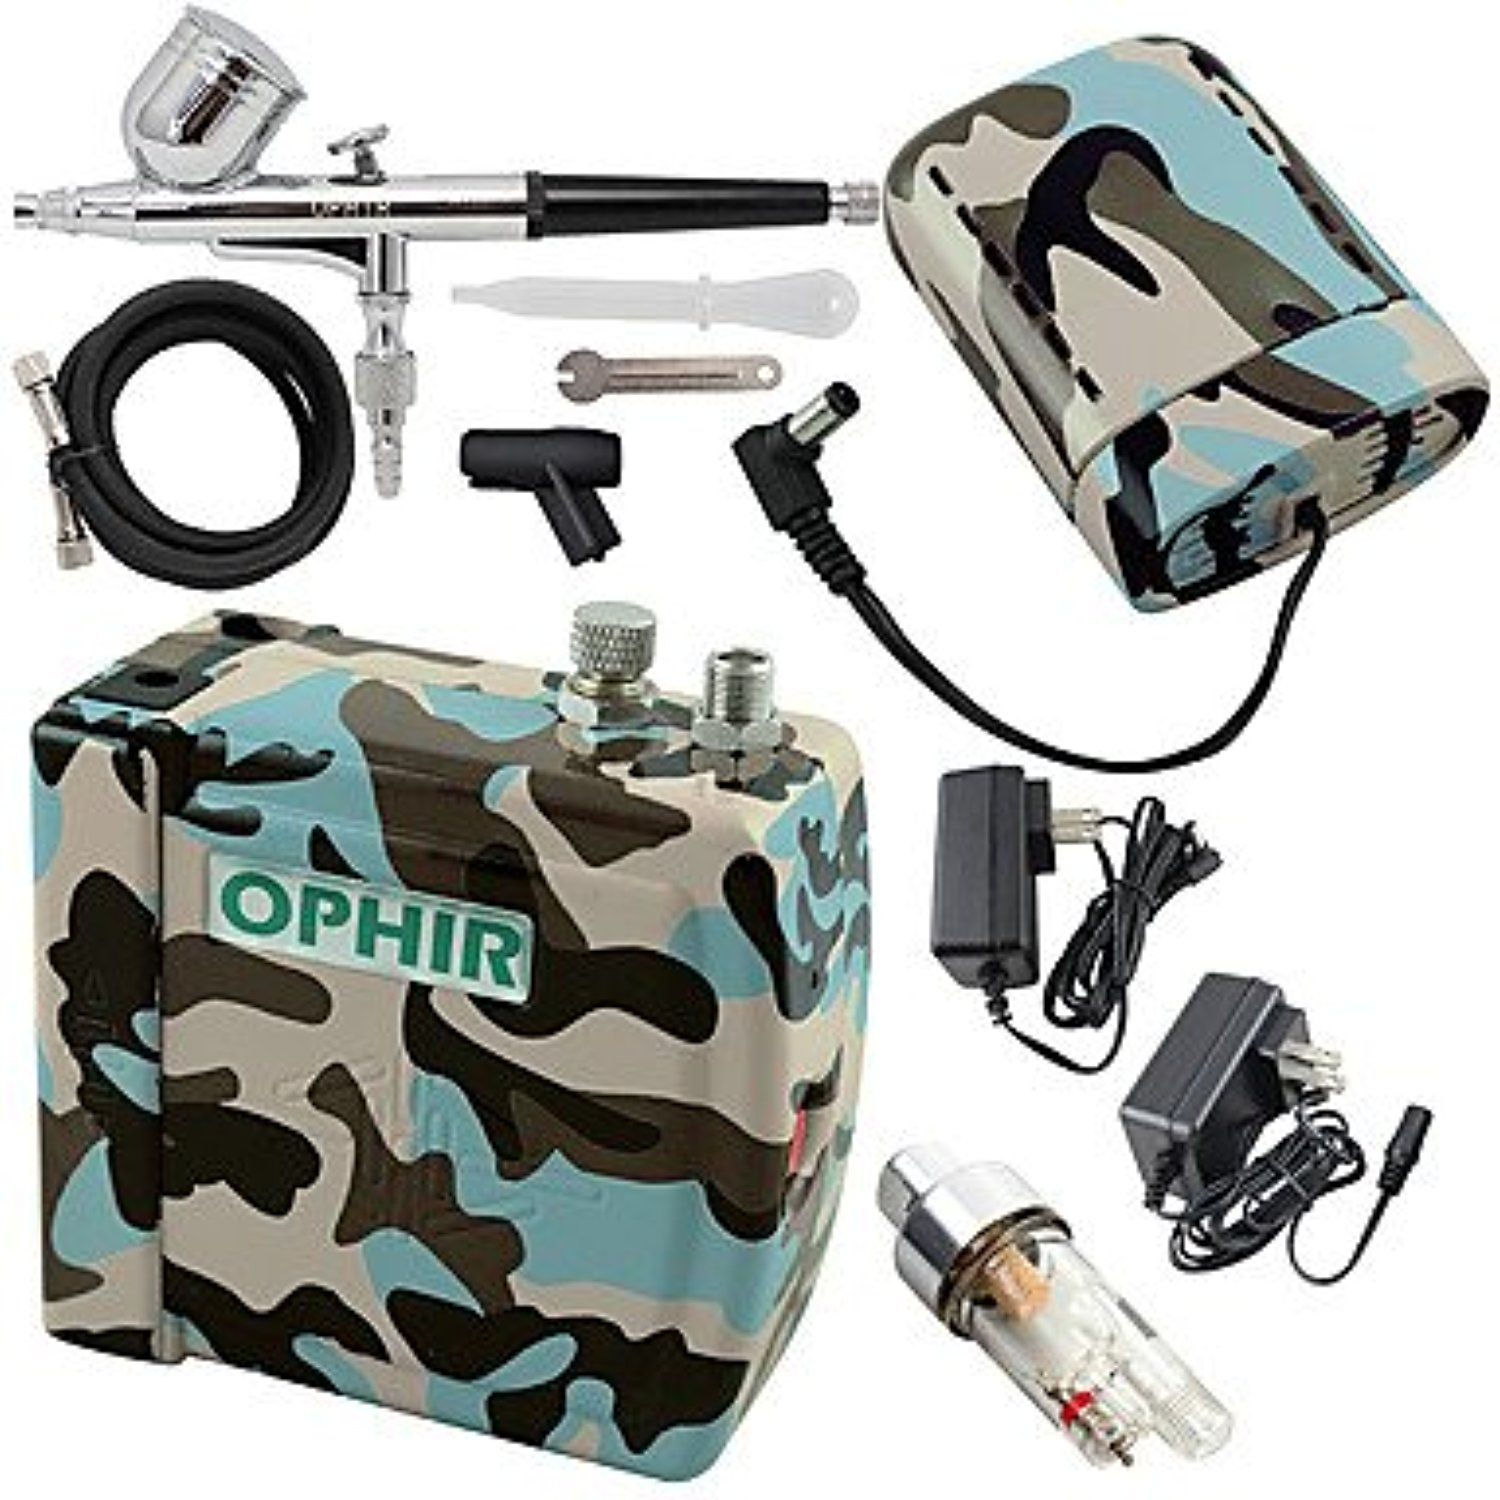 Blue Camouflage 0.3mm Adjustable Airbrush Kit with Mini